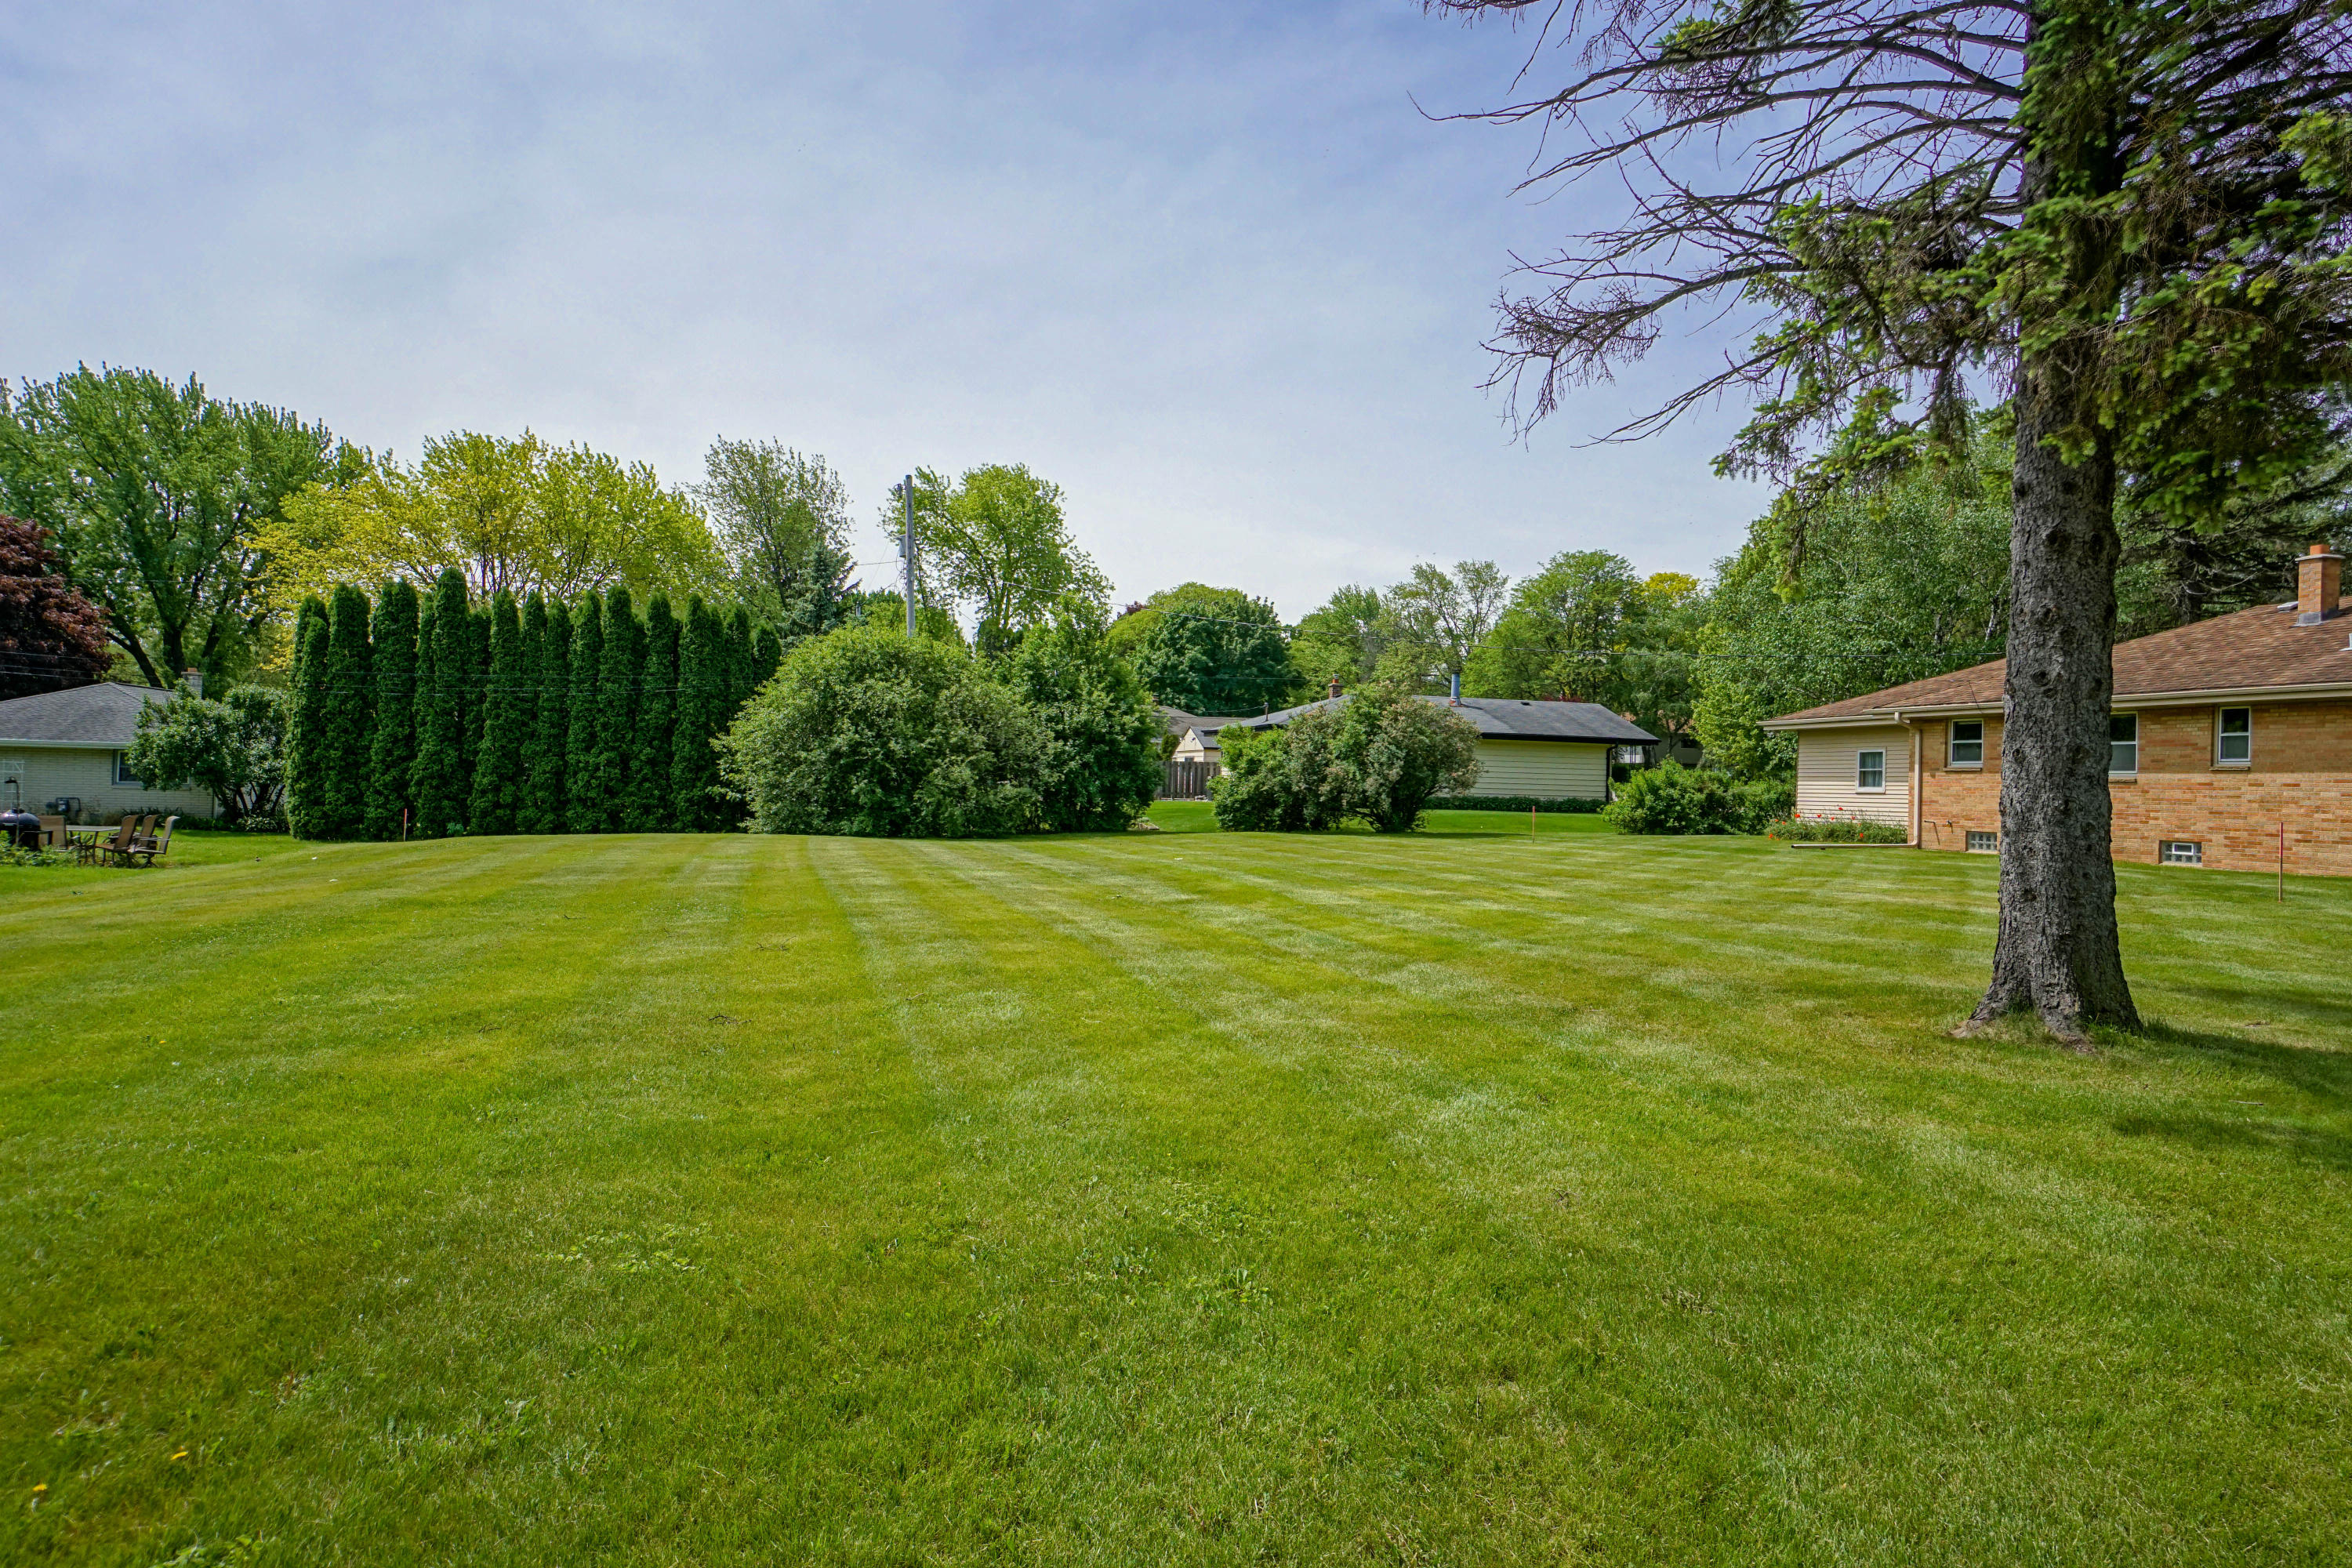 12955 Robinwood St, Brookfield, Wisconsin 53005, ,Vacant Land,For Sale,Robinwood St,1692055